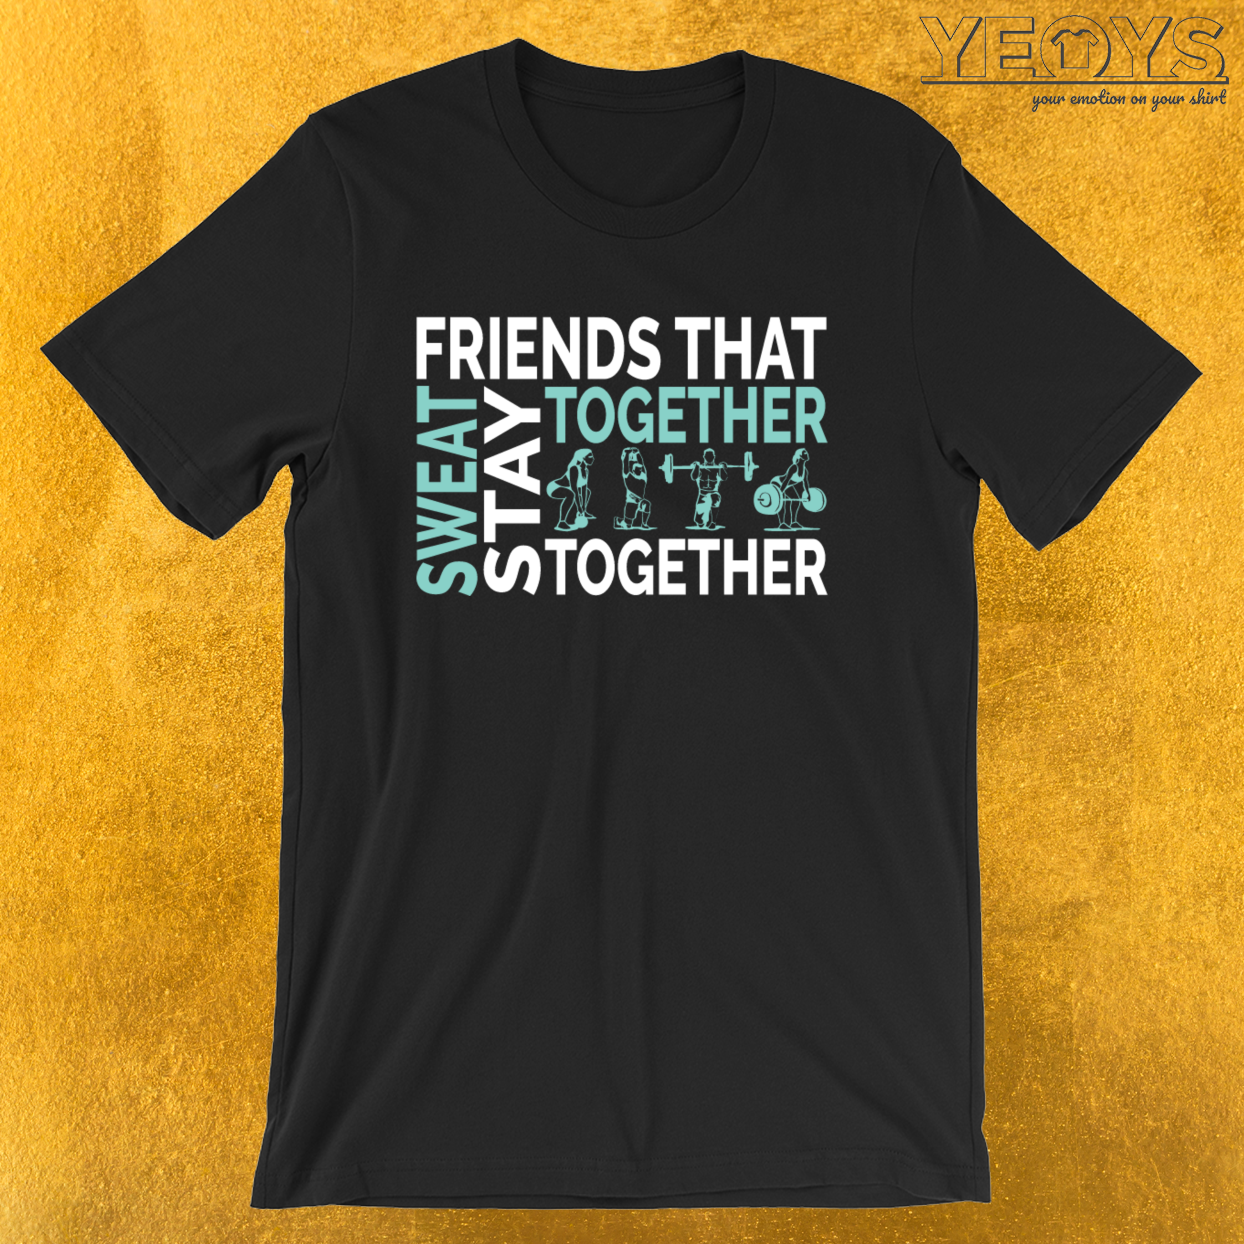 Friends That Sweat Together Stay Together – Gym Couple Tee